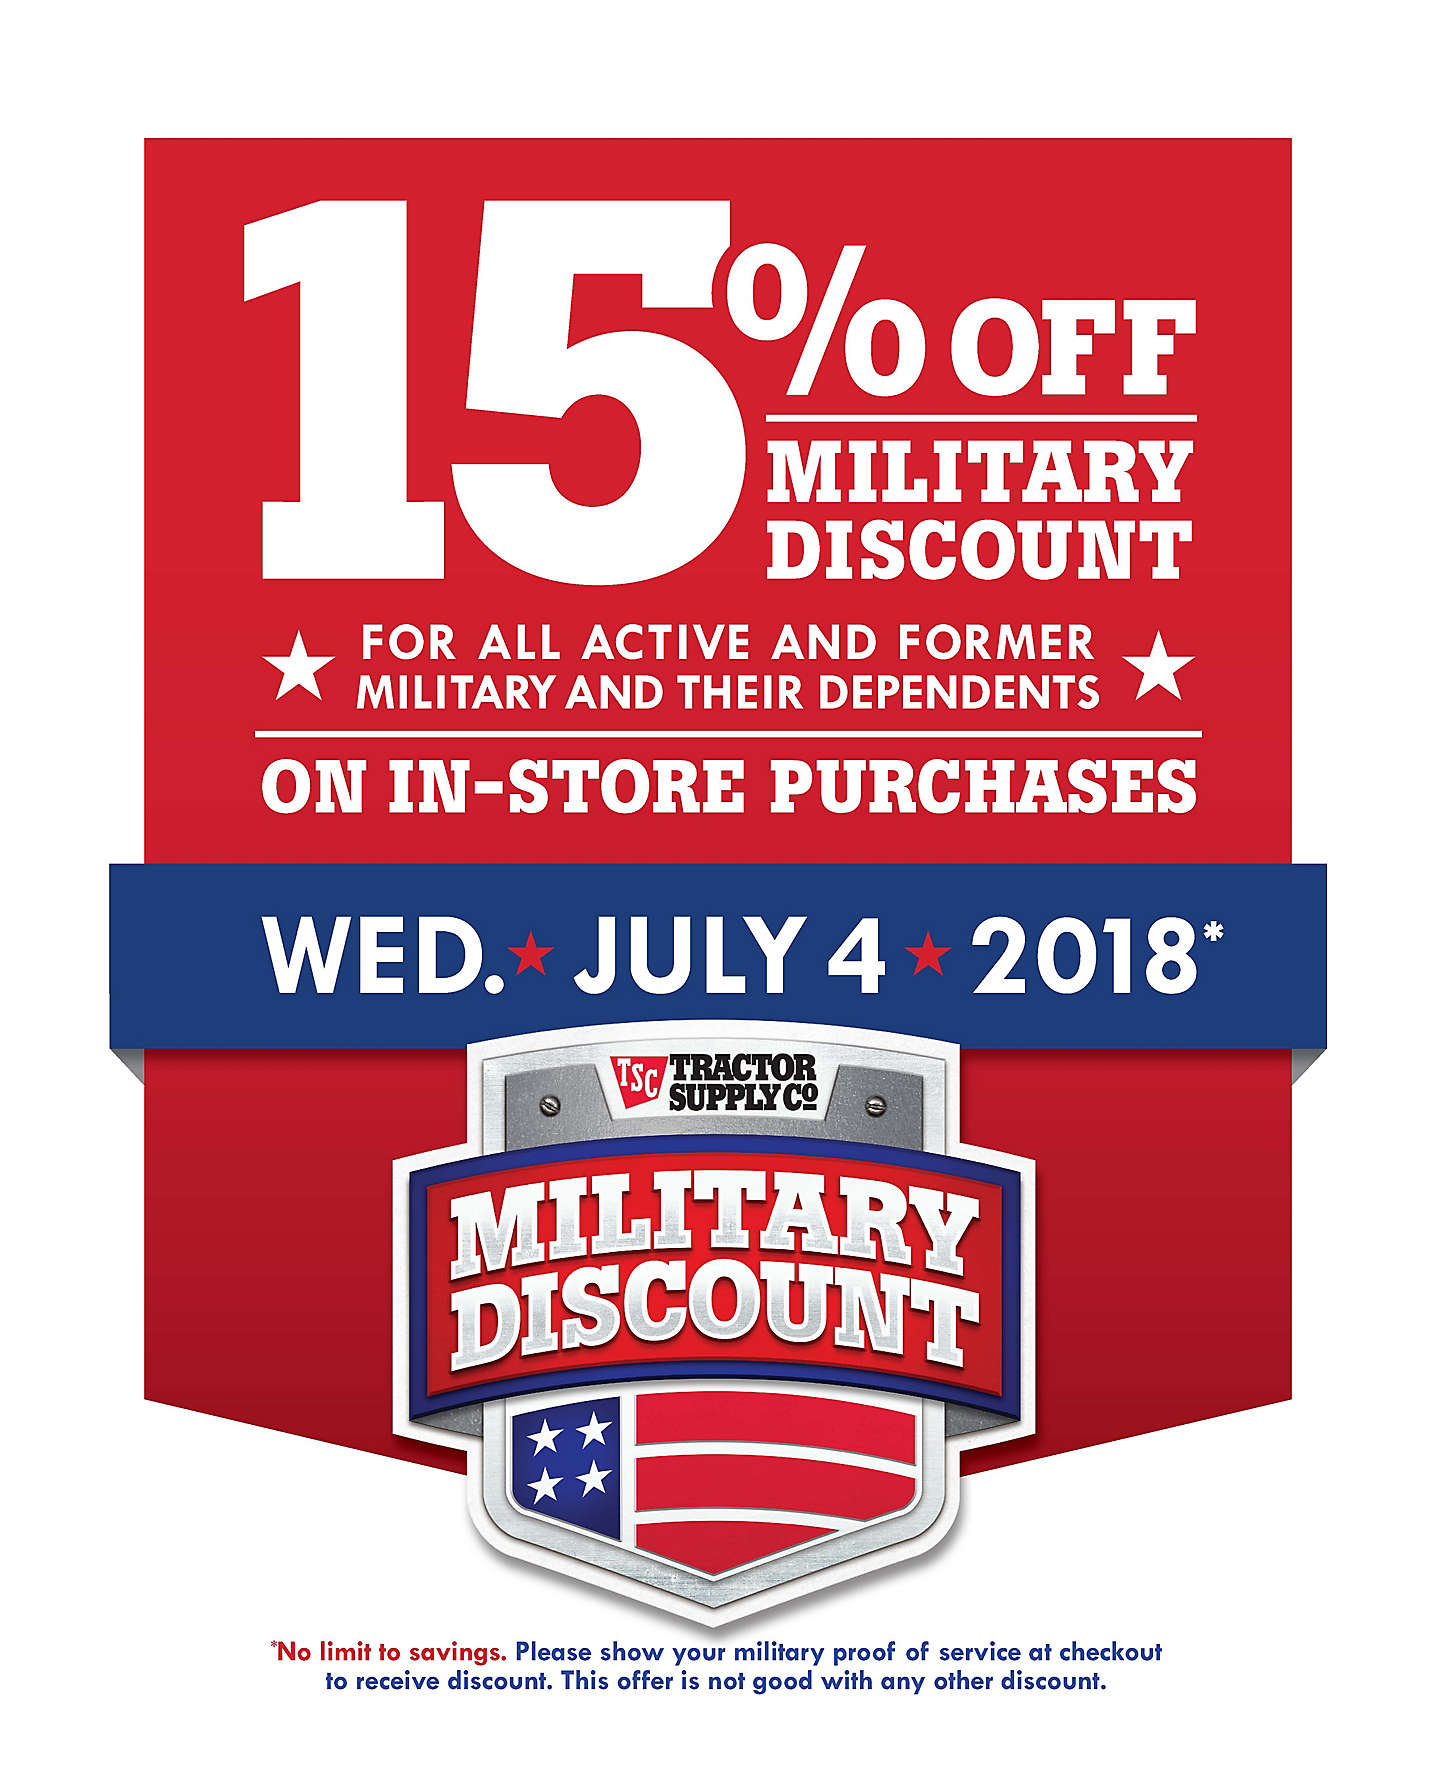 15% Military Discount for all active and former military and their dependents. In-store purchases, July 4, 2018.